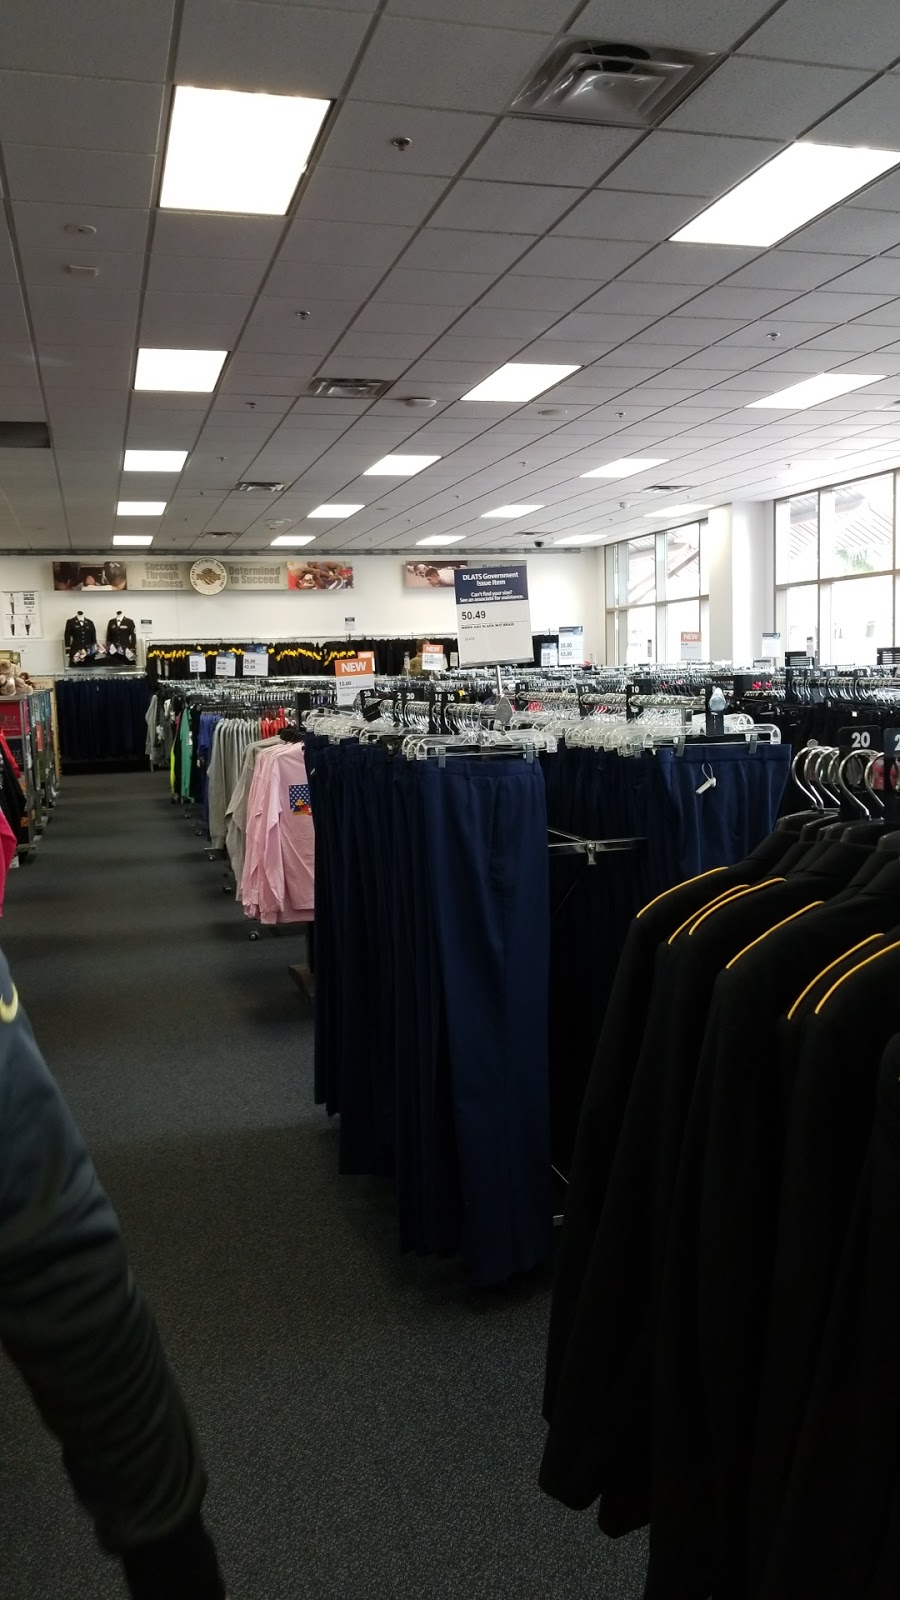 Military Clothing Sales - clothing store  | Photo 2 of 7 | Address: 1614 Pike Rd, Fort Bliss, TX 79906, USA | Phone: (915) 568-2880